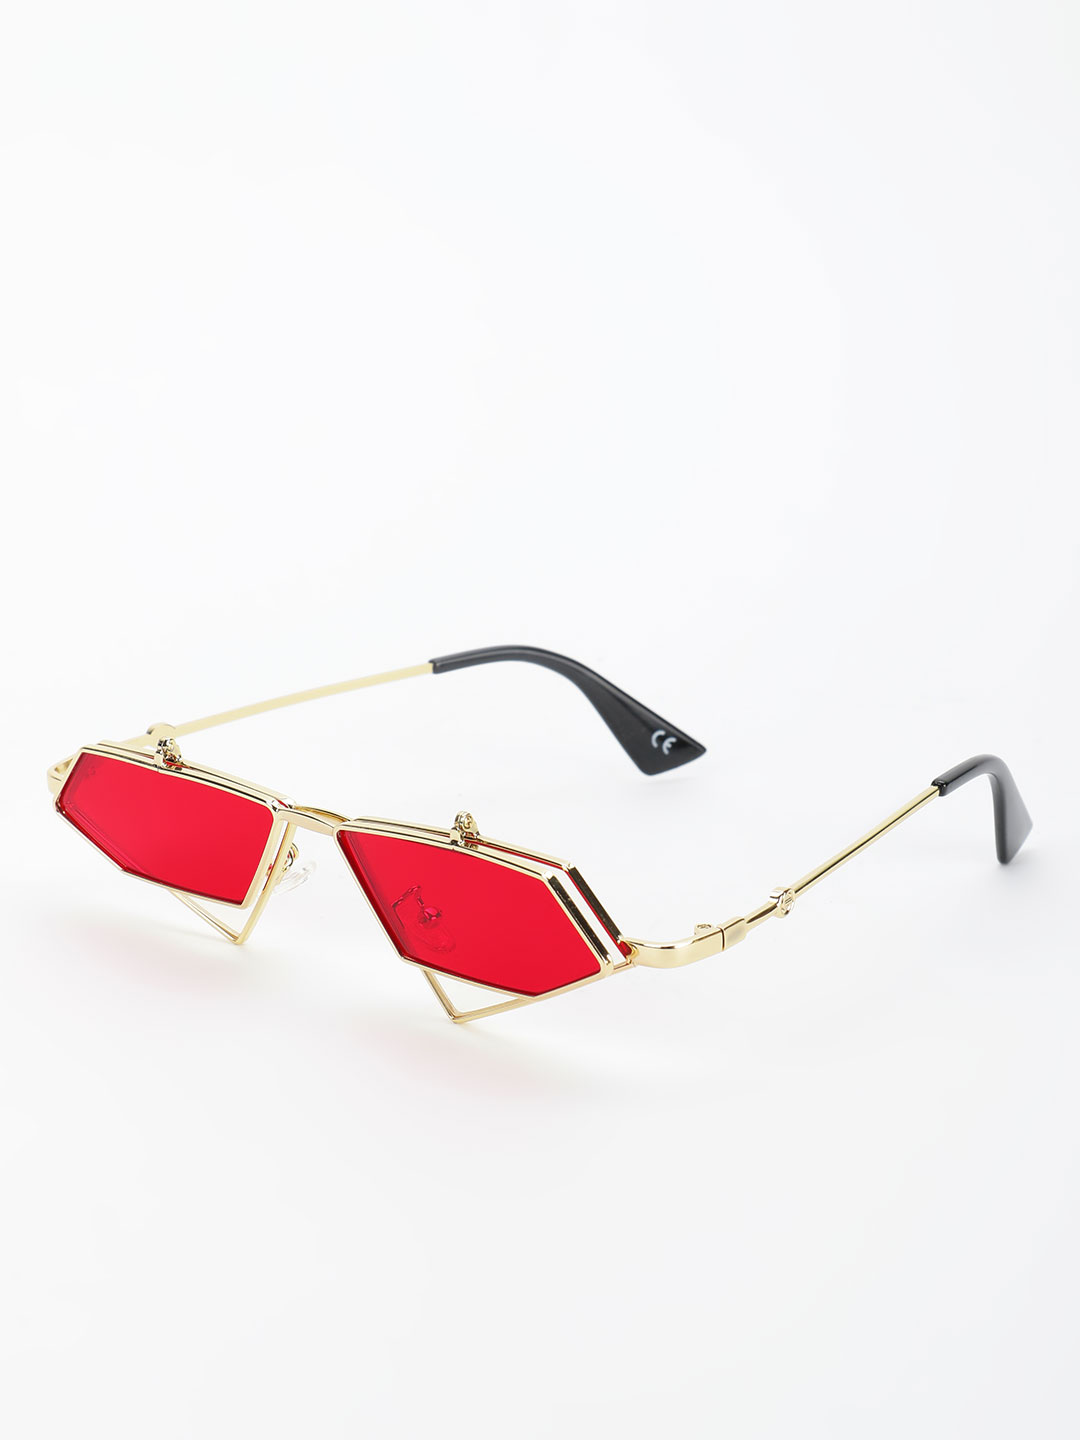 Style Fiesta Red Hexagonal Coloured Lens Retro Sunglasses 1